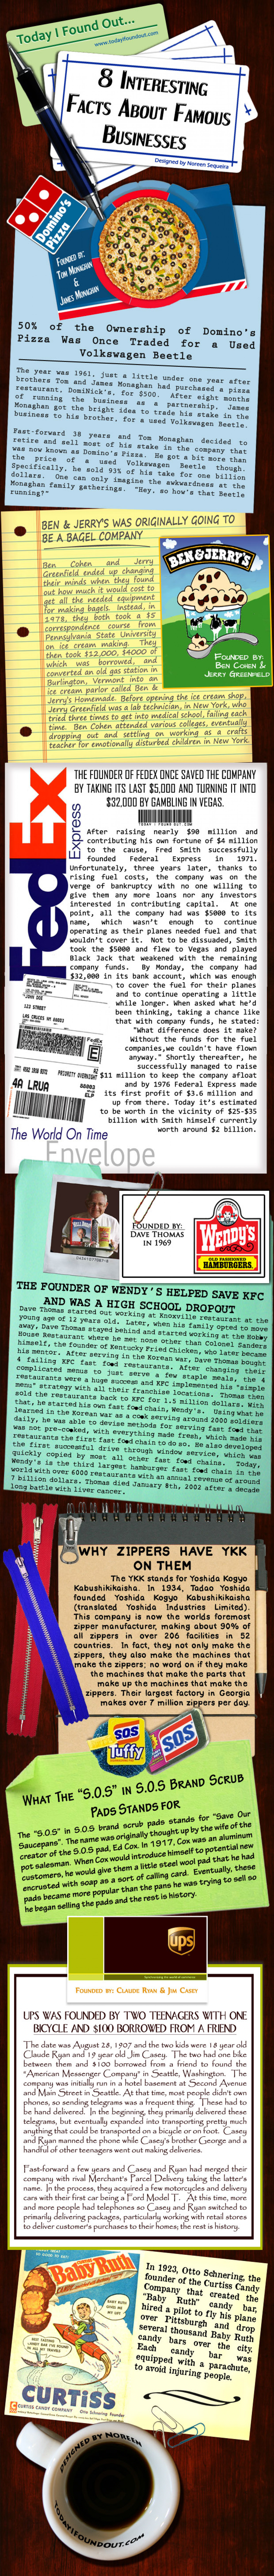 8 Interesting Facts About Famous Businesses Infographic